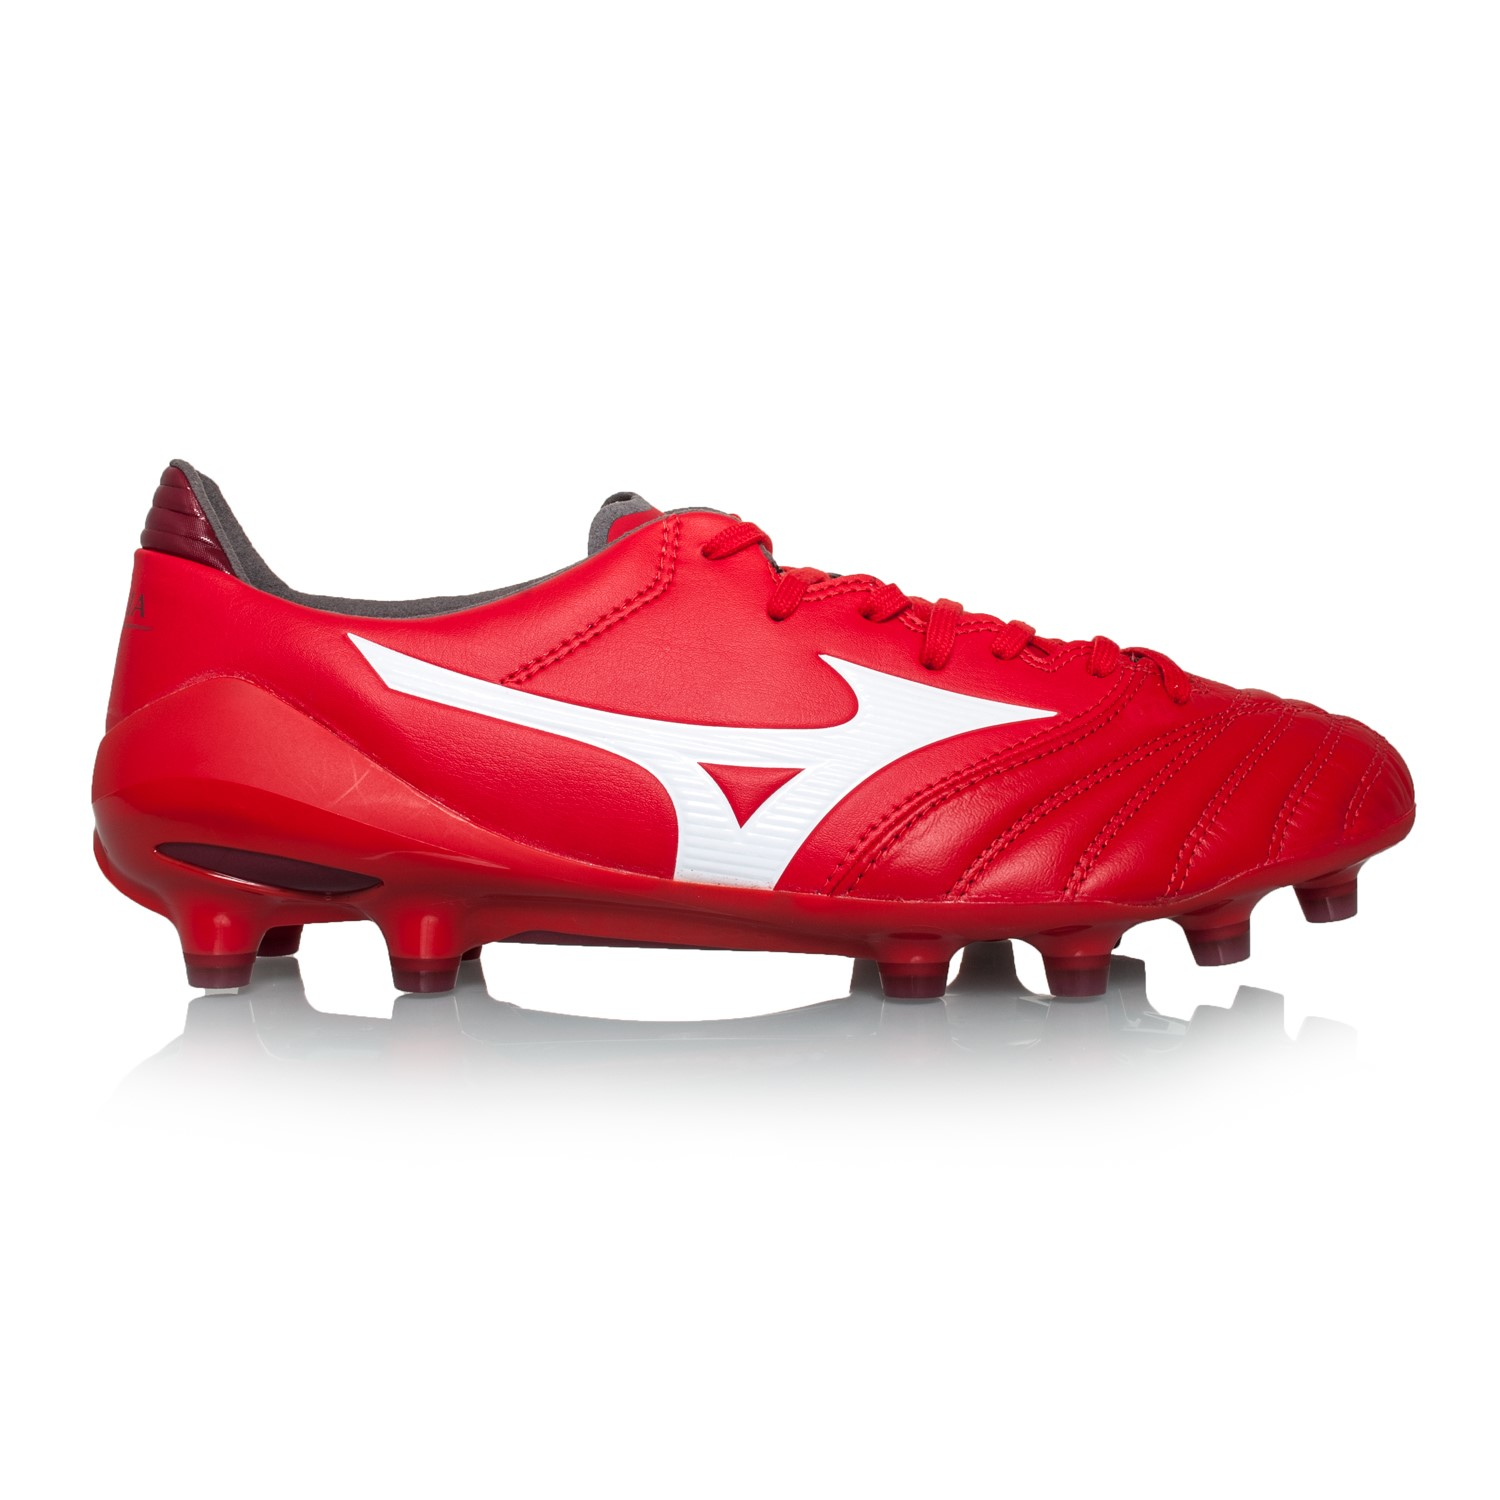 innovative design ff946 a9dad Mizuno Morelia Neo II MD - Mens Football Boots